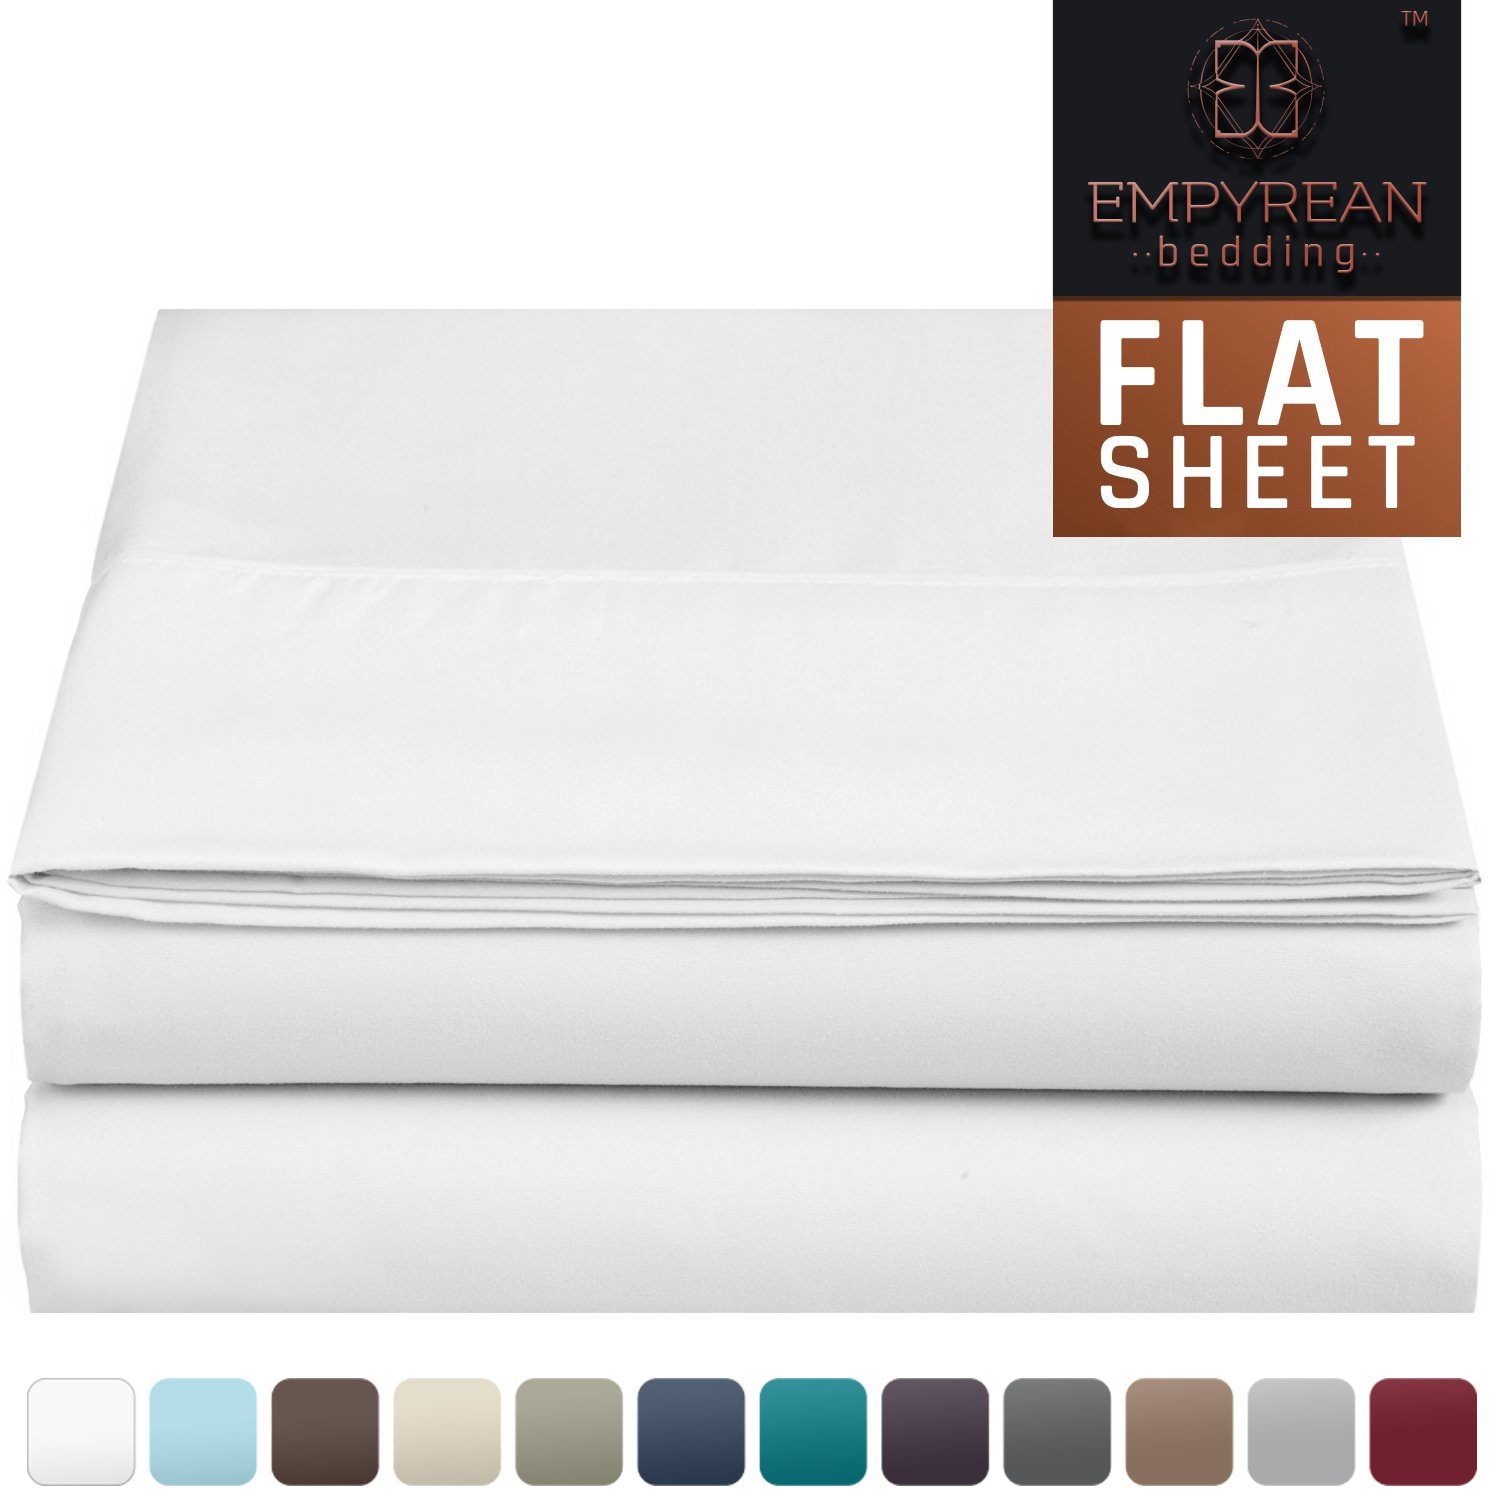 Premium Hotel Flat Sheet - Luxurious & Soft Twin / Twin-XL (Single) Size White Top Sheets - Best Quality Brushed Microfiber Linen - Hypoallergenic Bedding Bedroom Essentials By Empyrean Bedding COMIN18JU025817